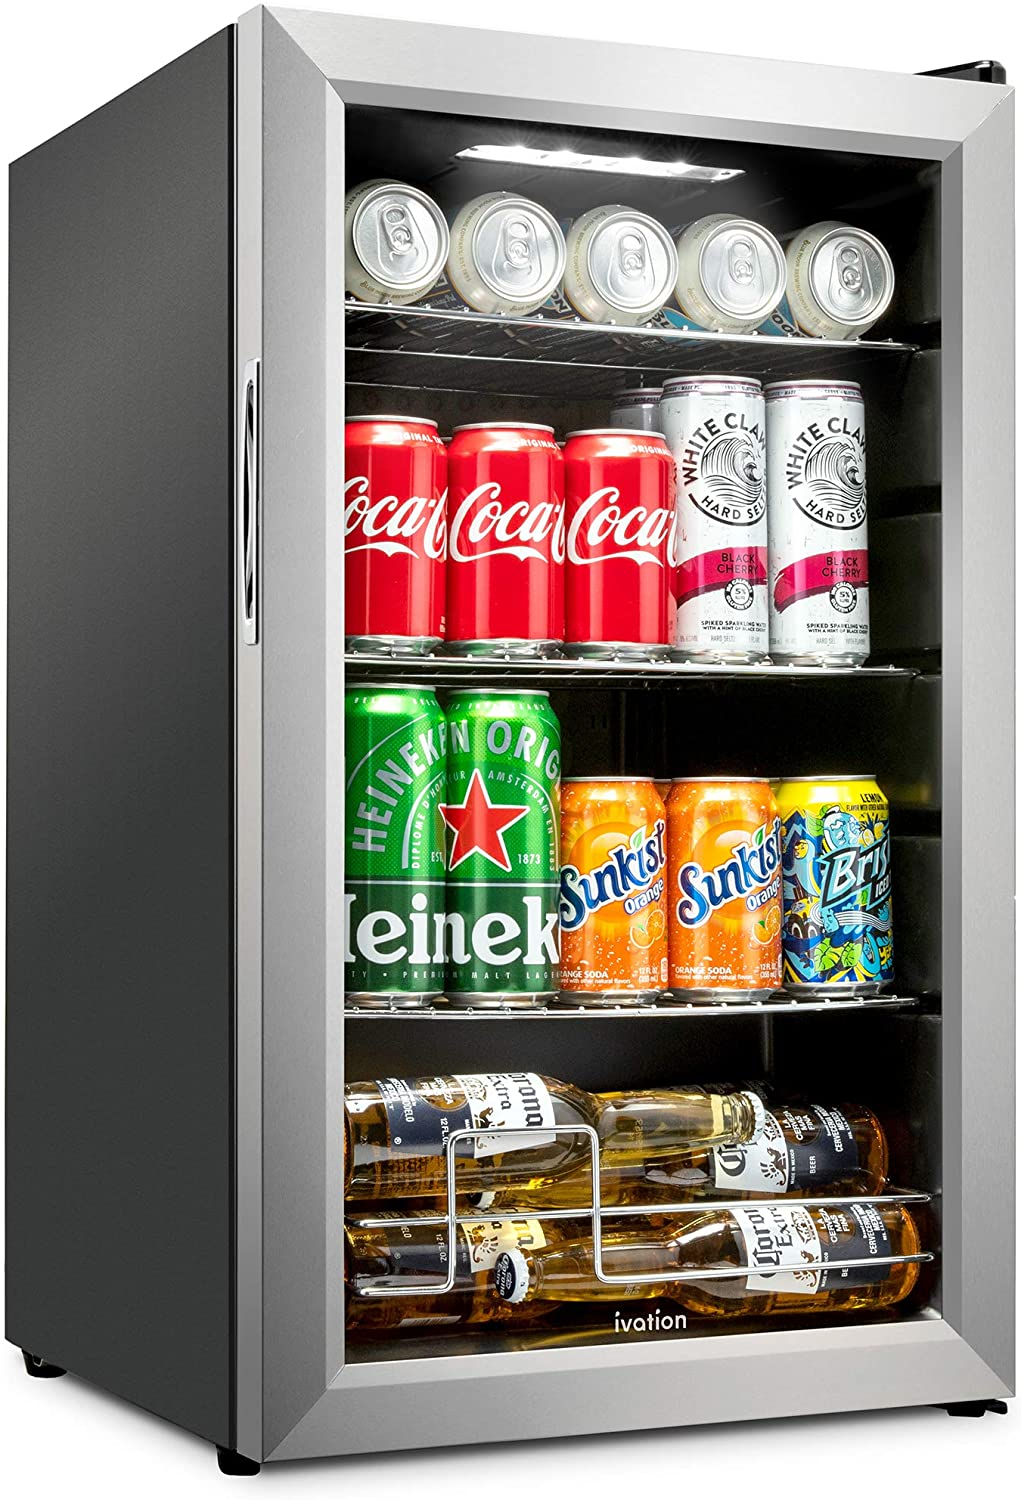 Ivation 101 Can Beverage Refrigerator | Freestanding Ultra Cool Mini Drink Fridge | Beer, Cocktails, Soda, Juice Cooler for Home & Office | Reversible Glass Door & Adjustable Shelving, Stainless Steel